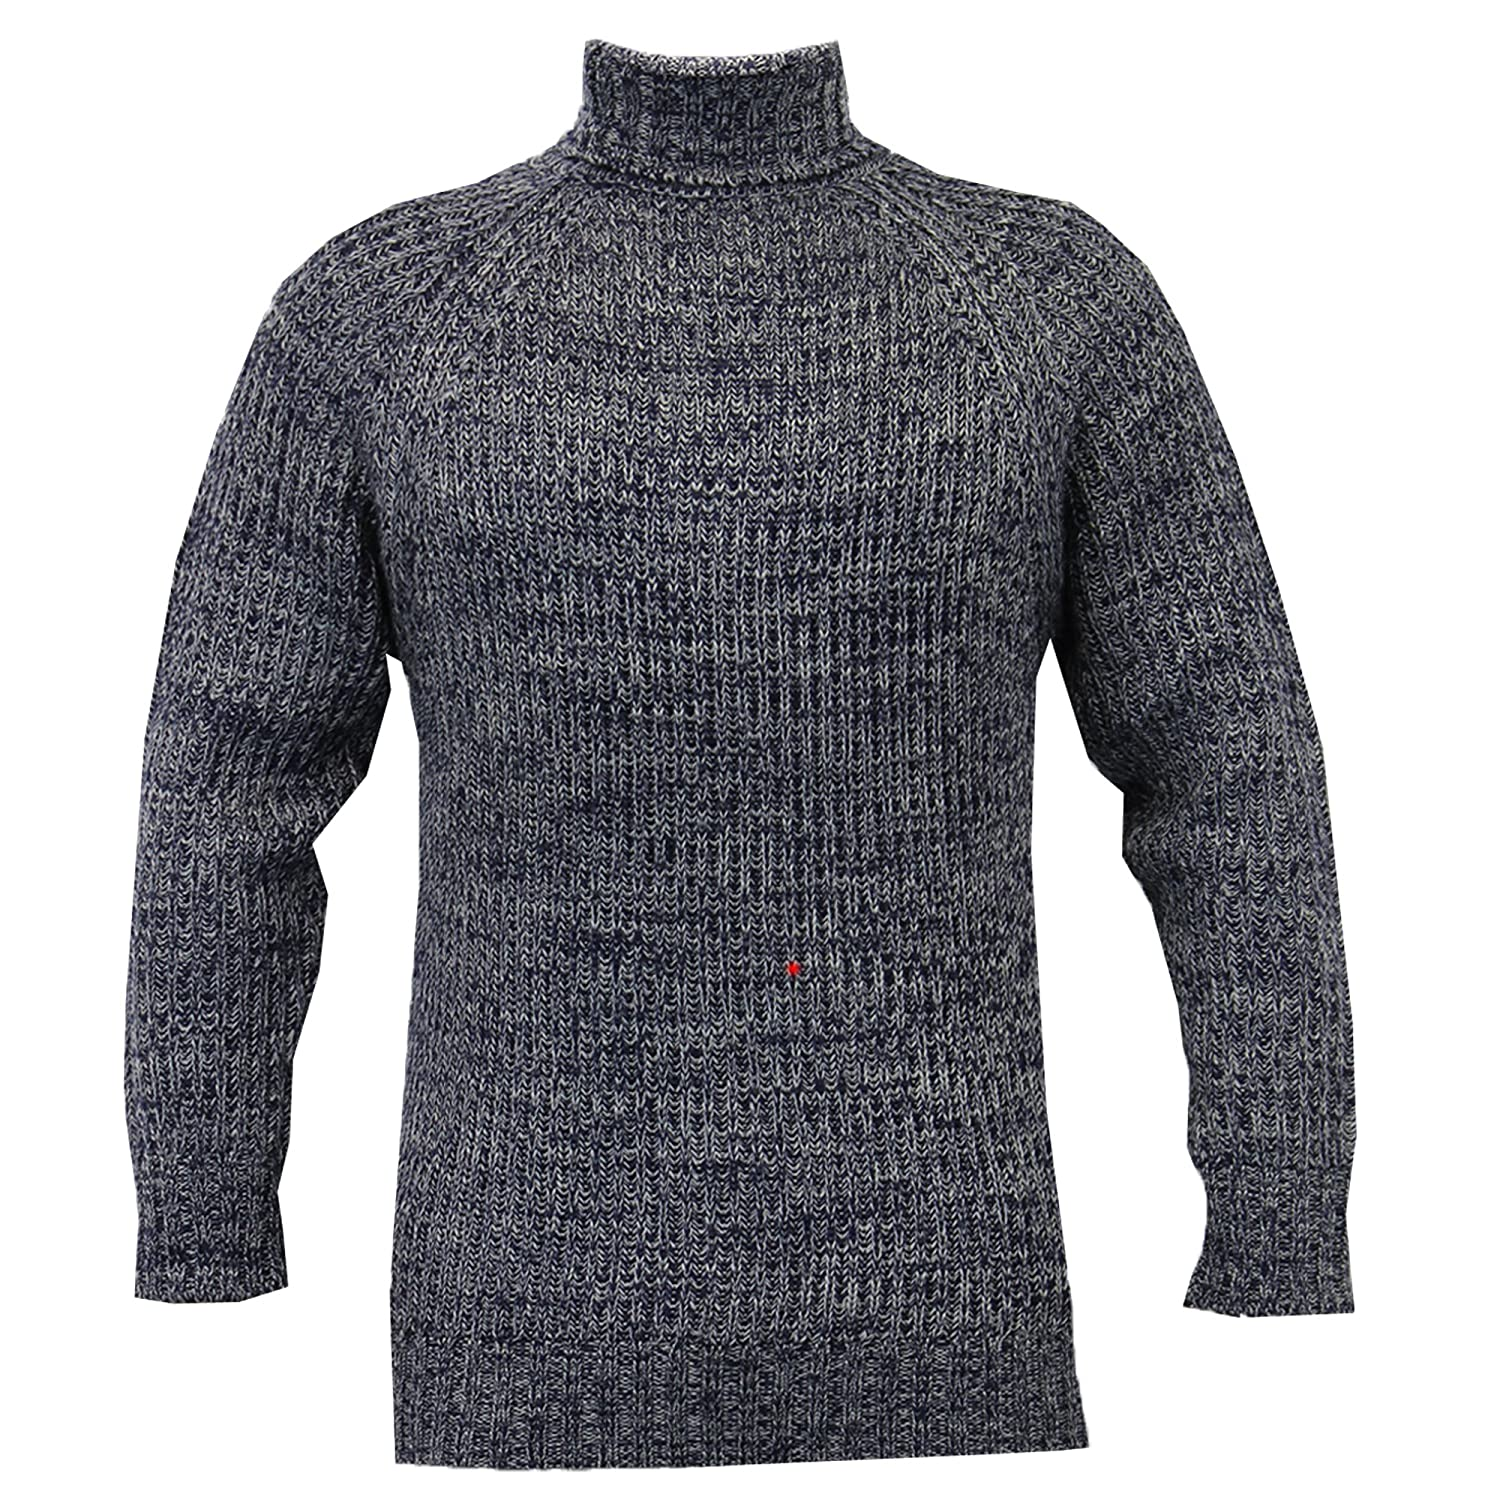 Brave Soul Mens Stylish Knitted Jumpers 273BIBLE